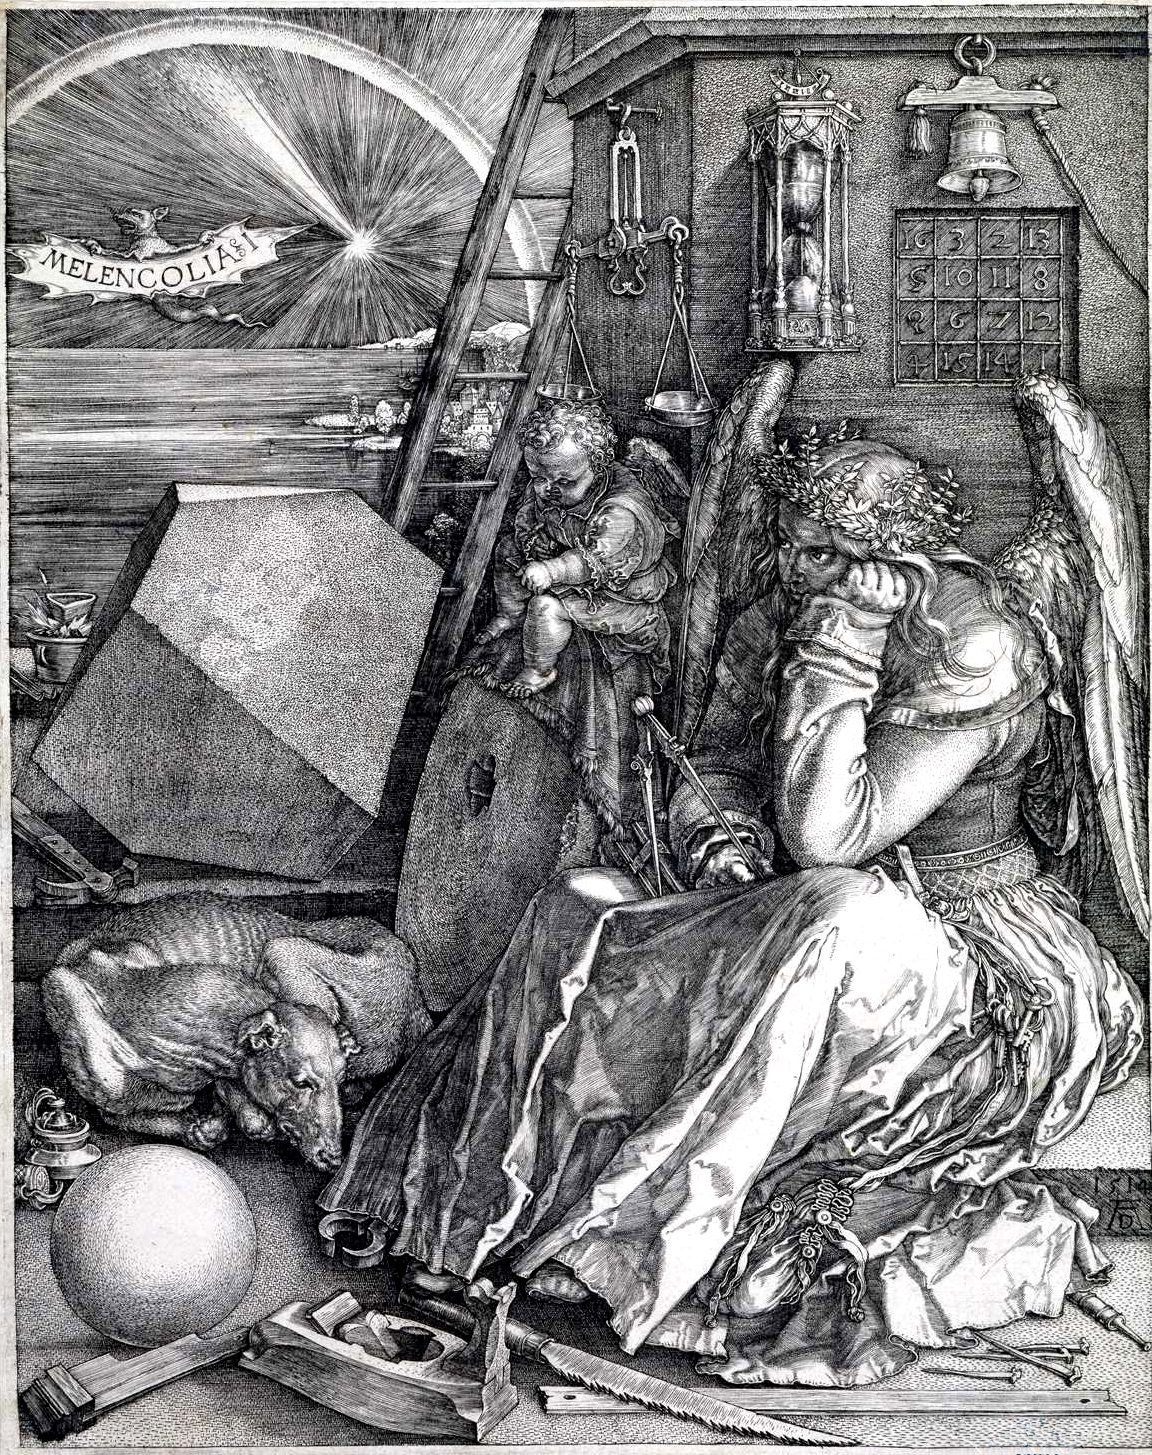 Claw hammer in Durer painting. DIY 500 years ago